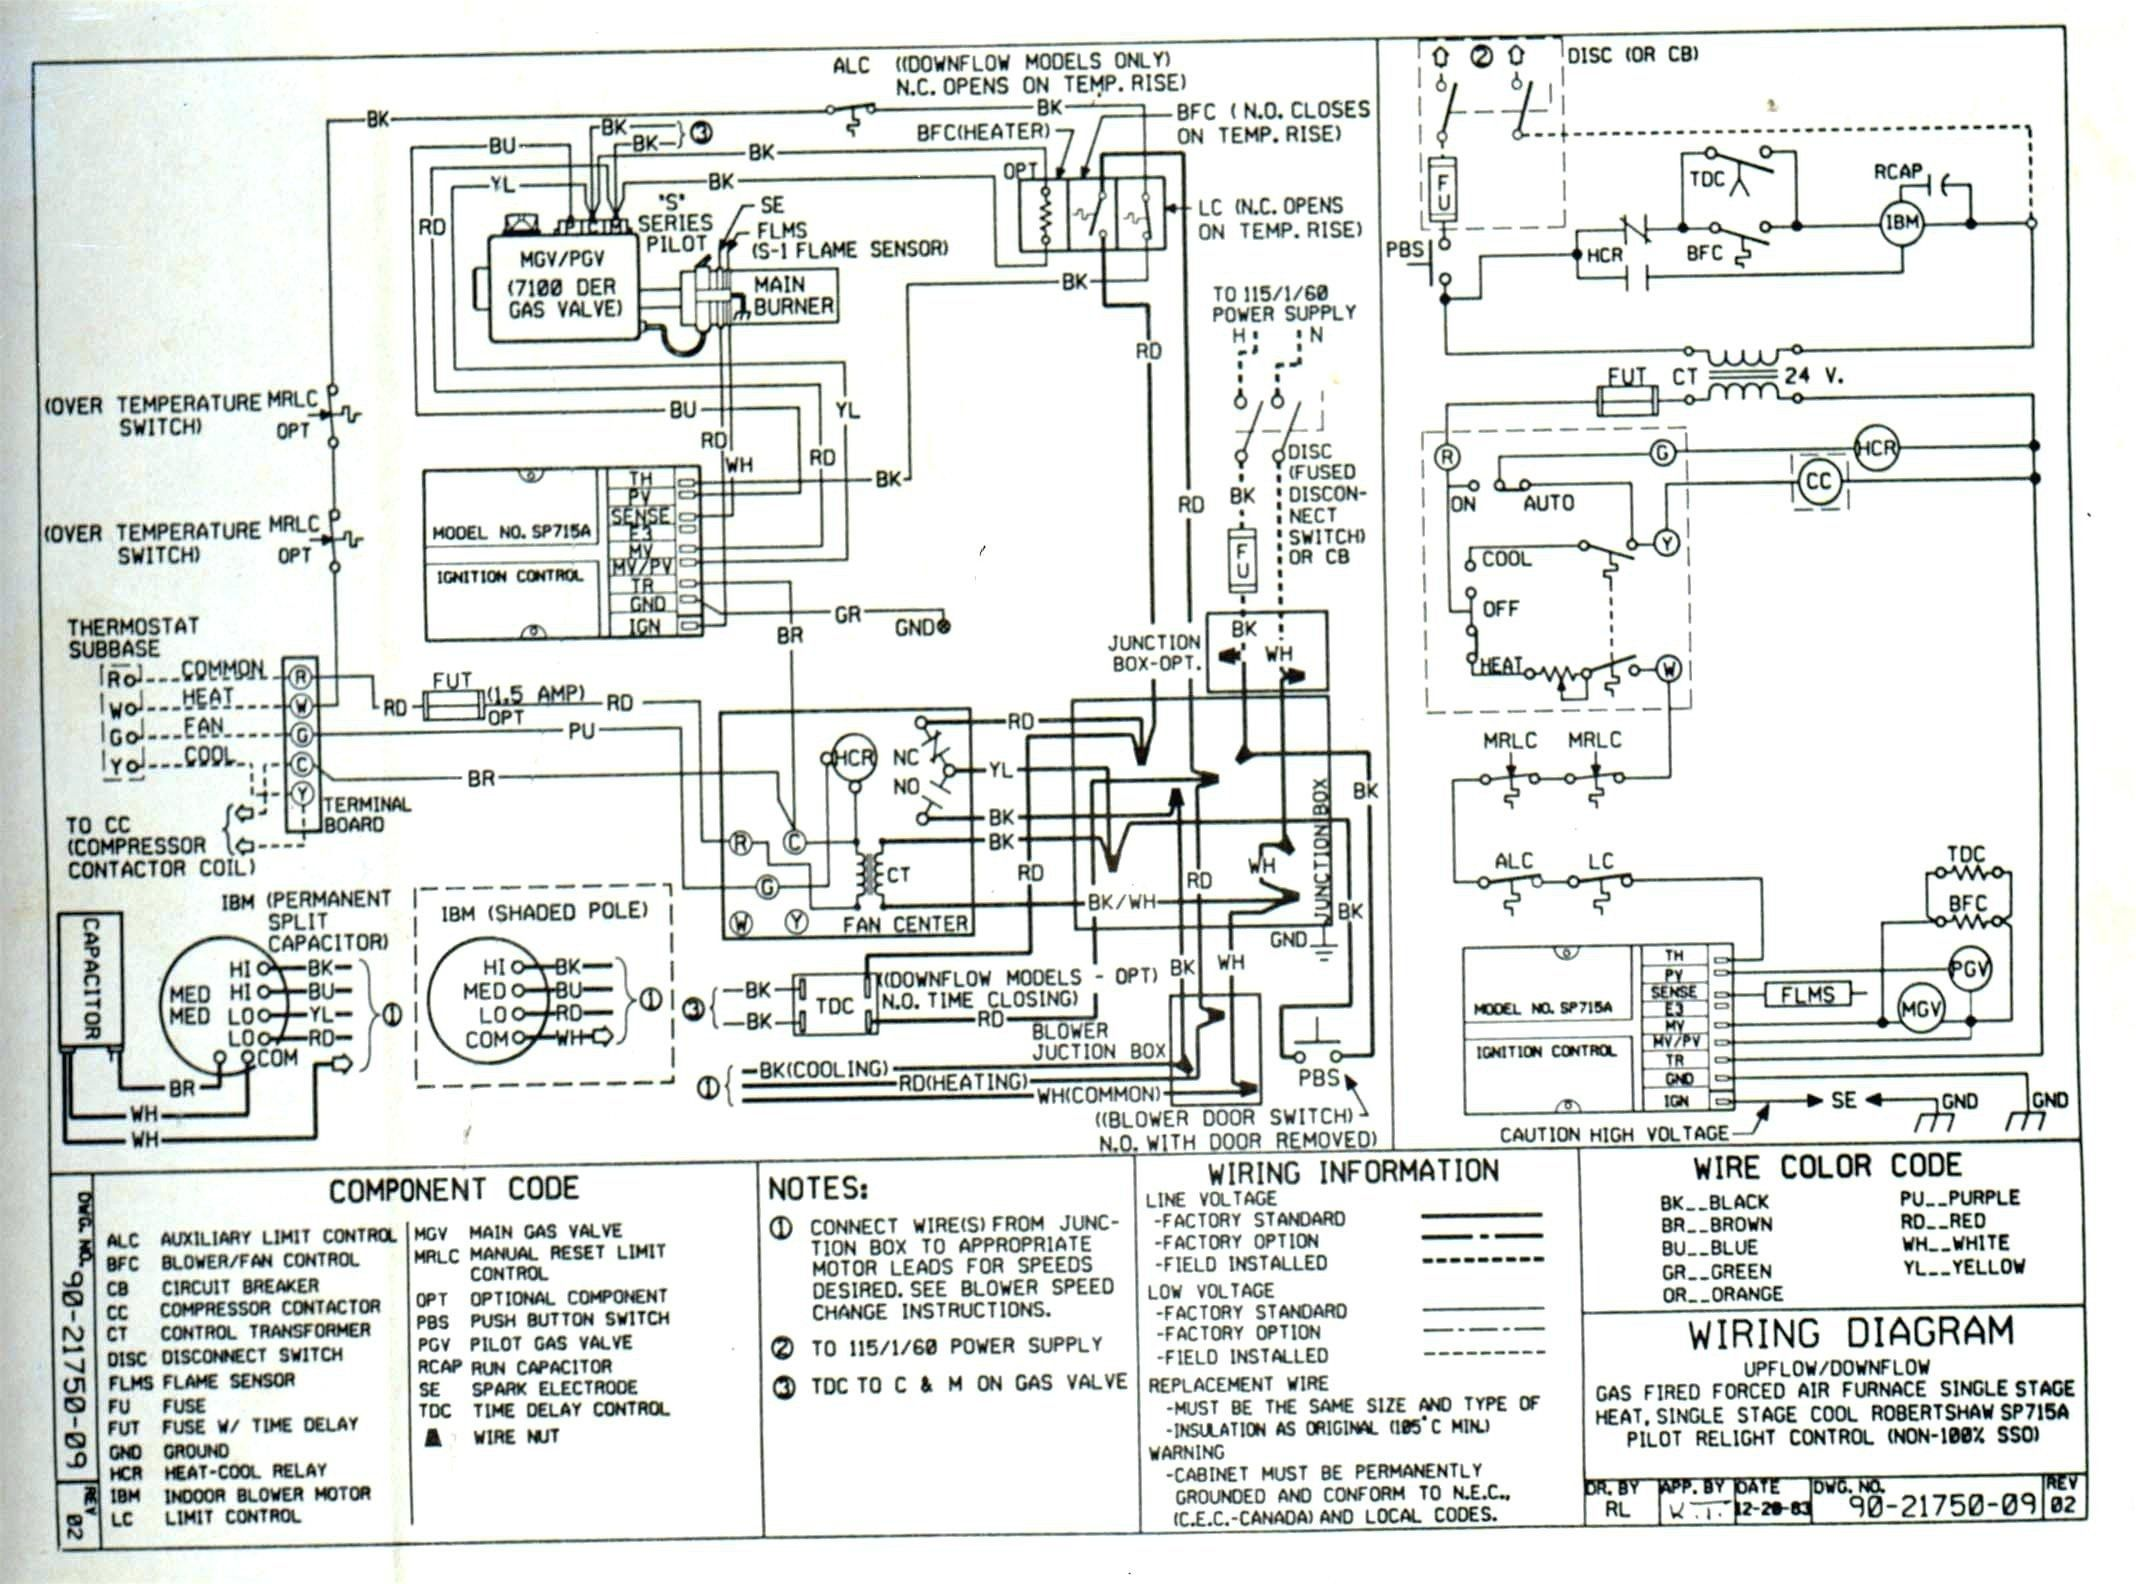 Air Conditioner Wiring Diagram For 1200 Xl - Wiring Diagramsleboisenchante.fr